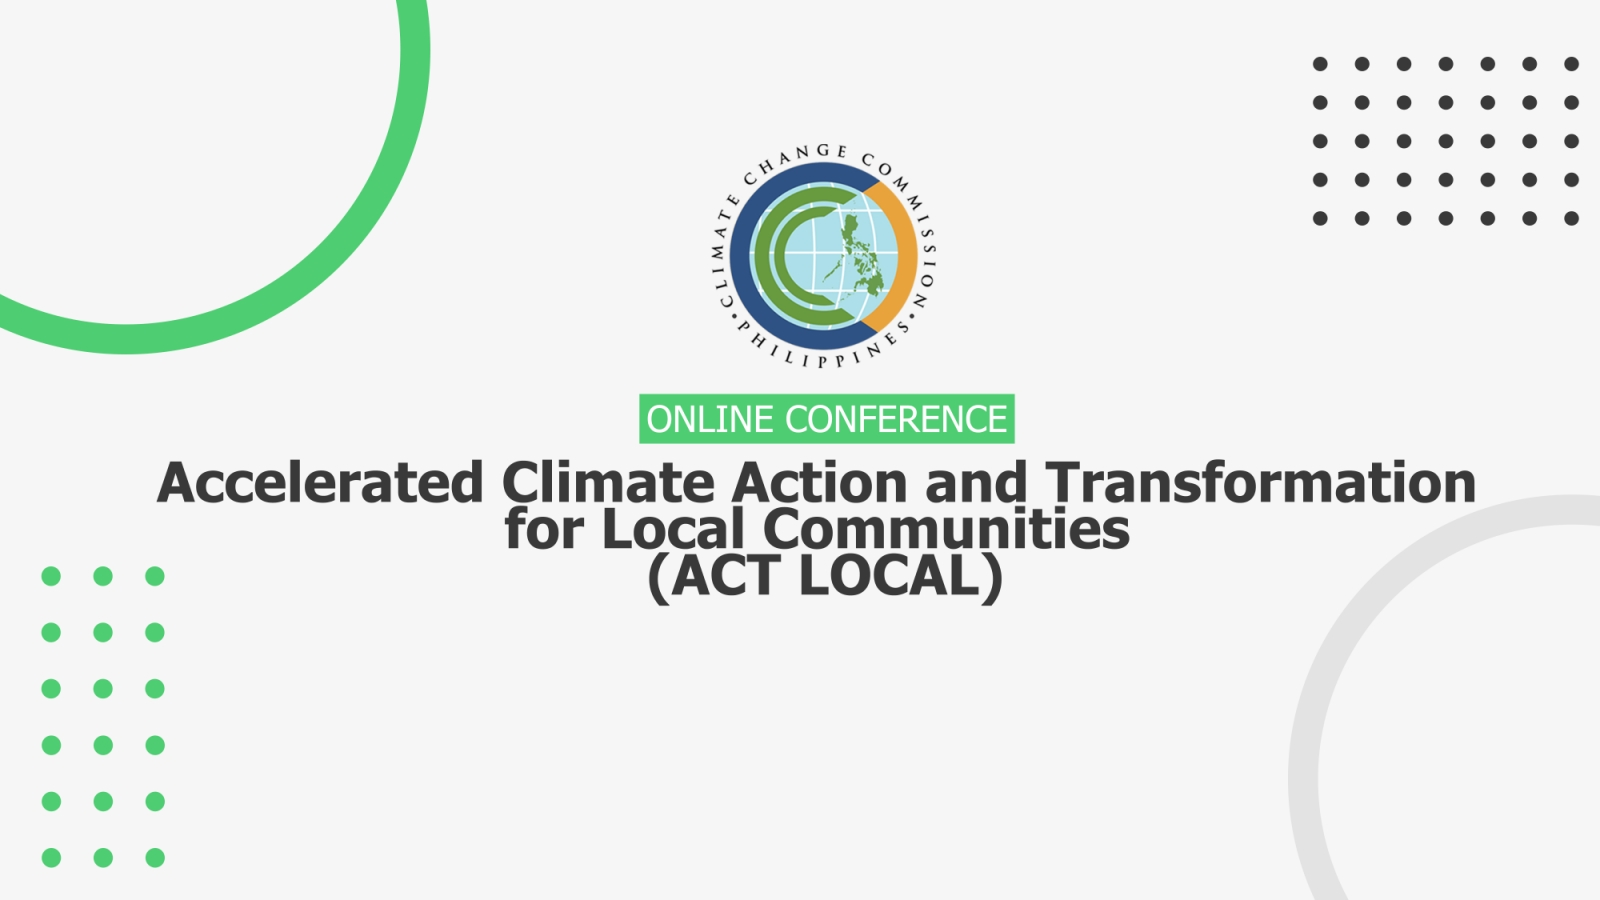 Week 3 ACT LOCAL - Accelerated Climate Action and Transformation for Local Communities